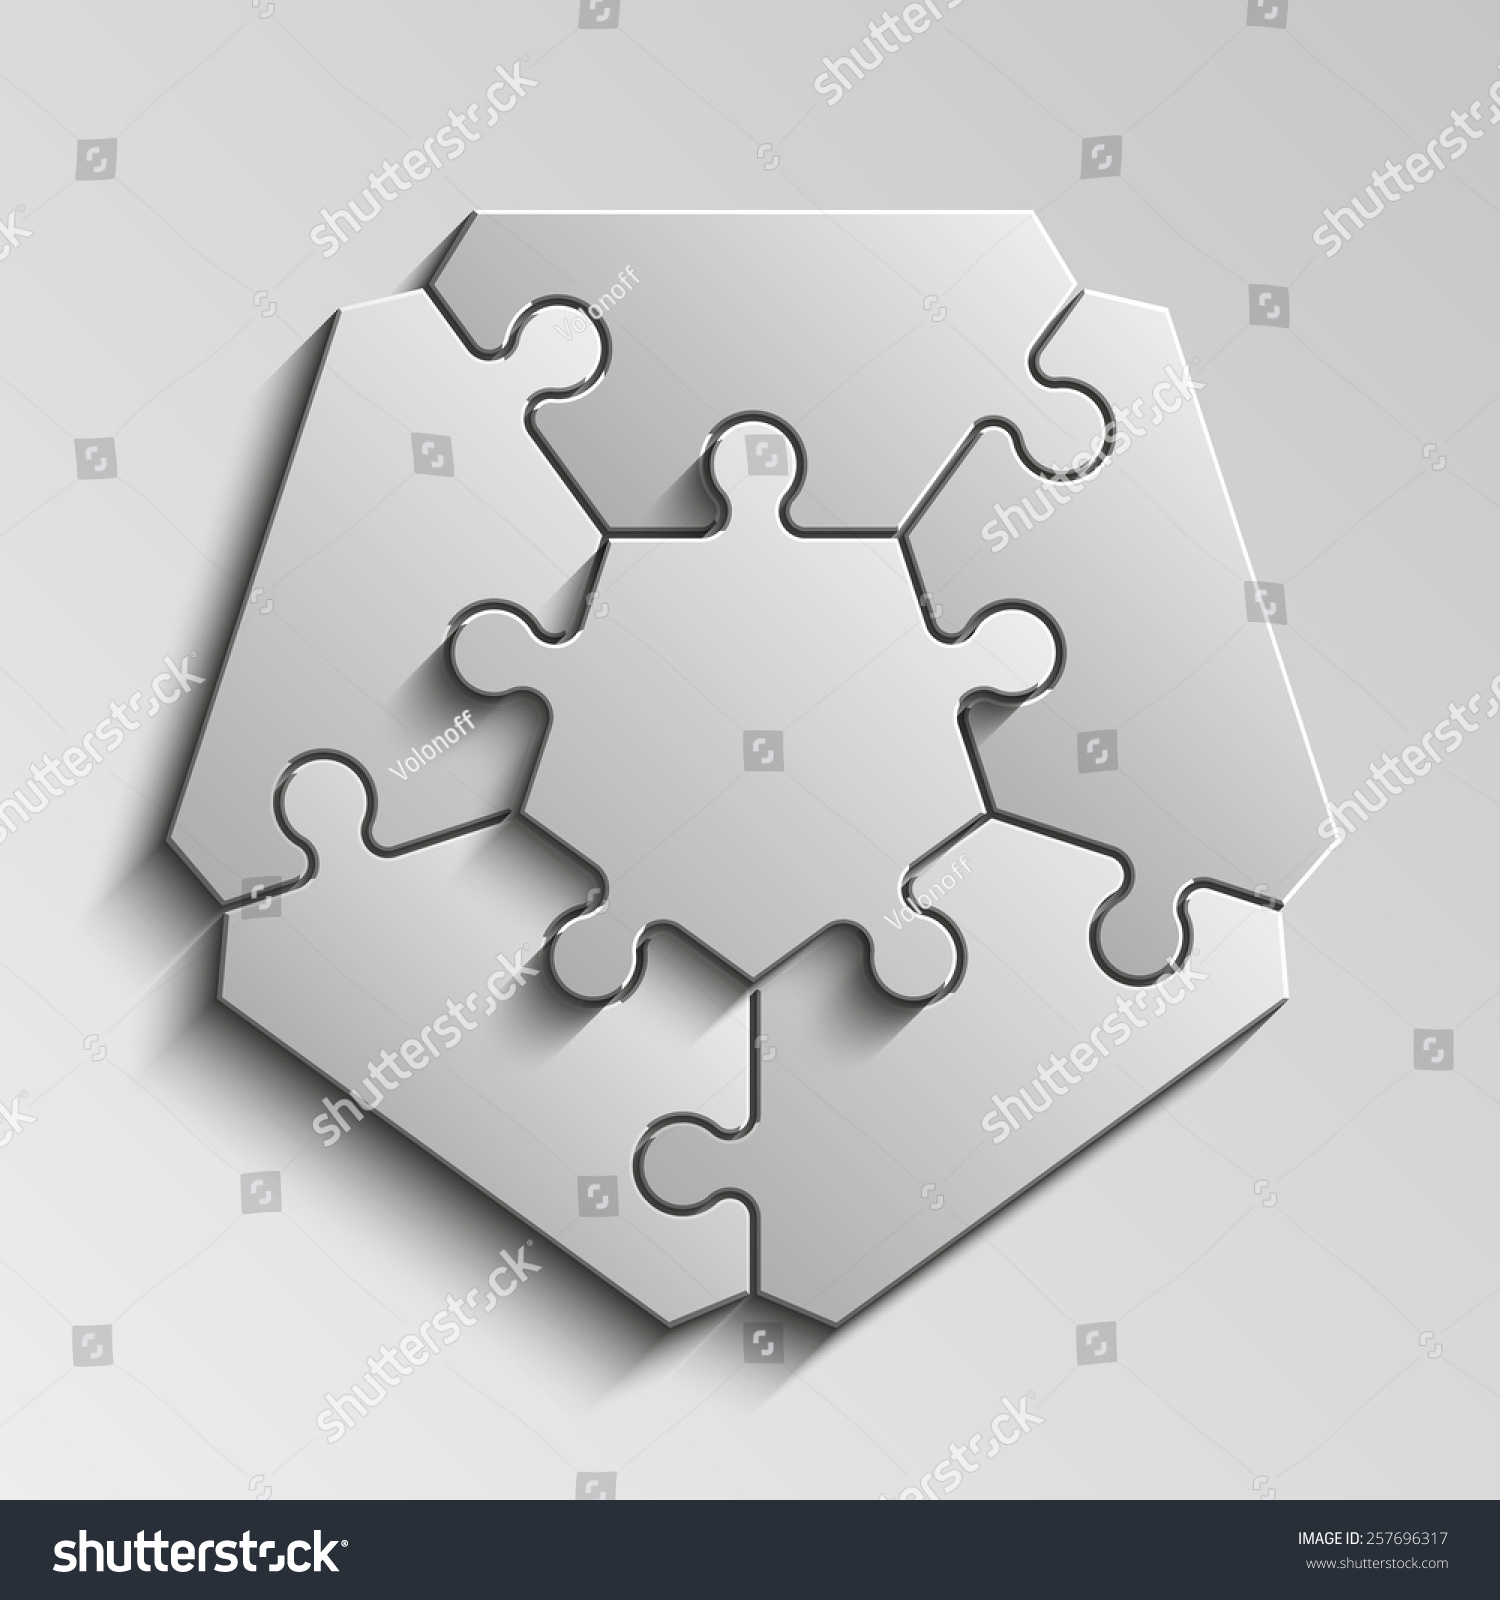 Fivepointed Figure Piece Flat Puzzle Round Stock Illustration ...